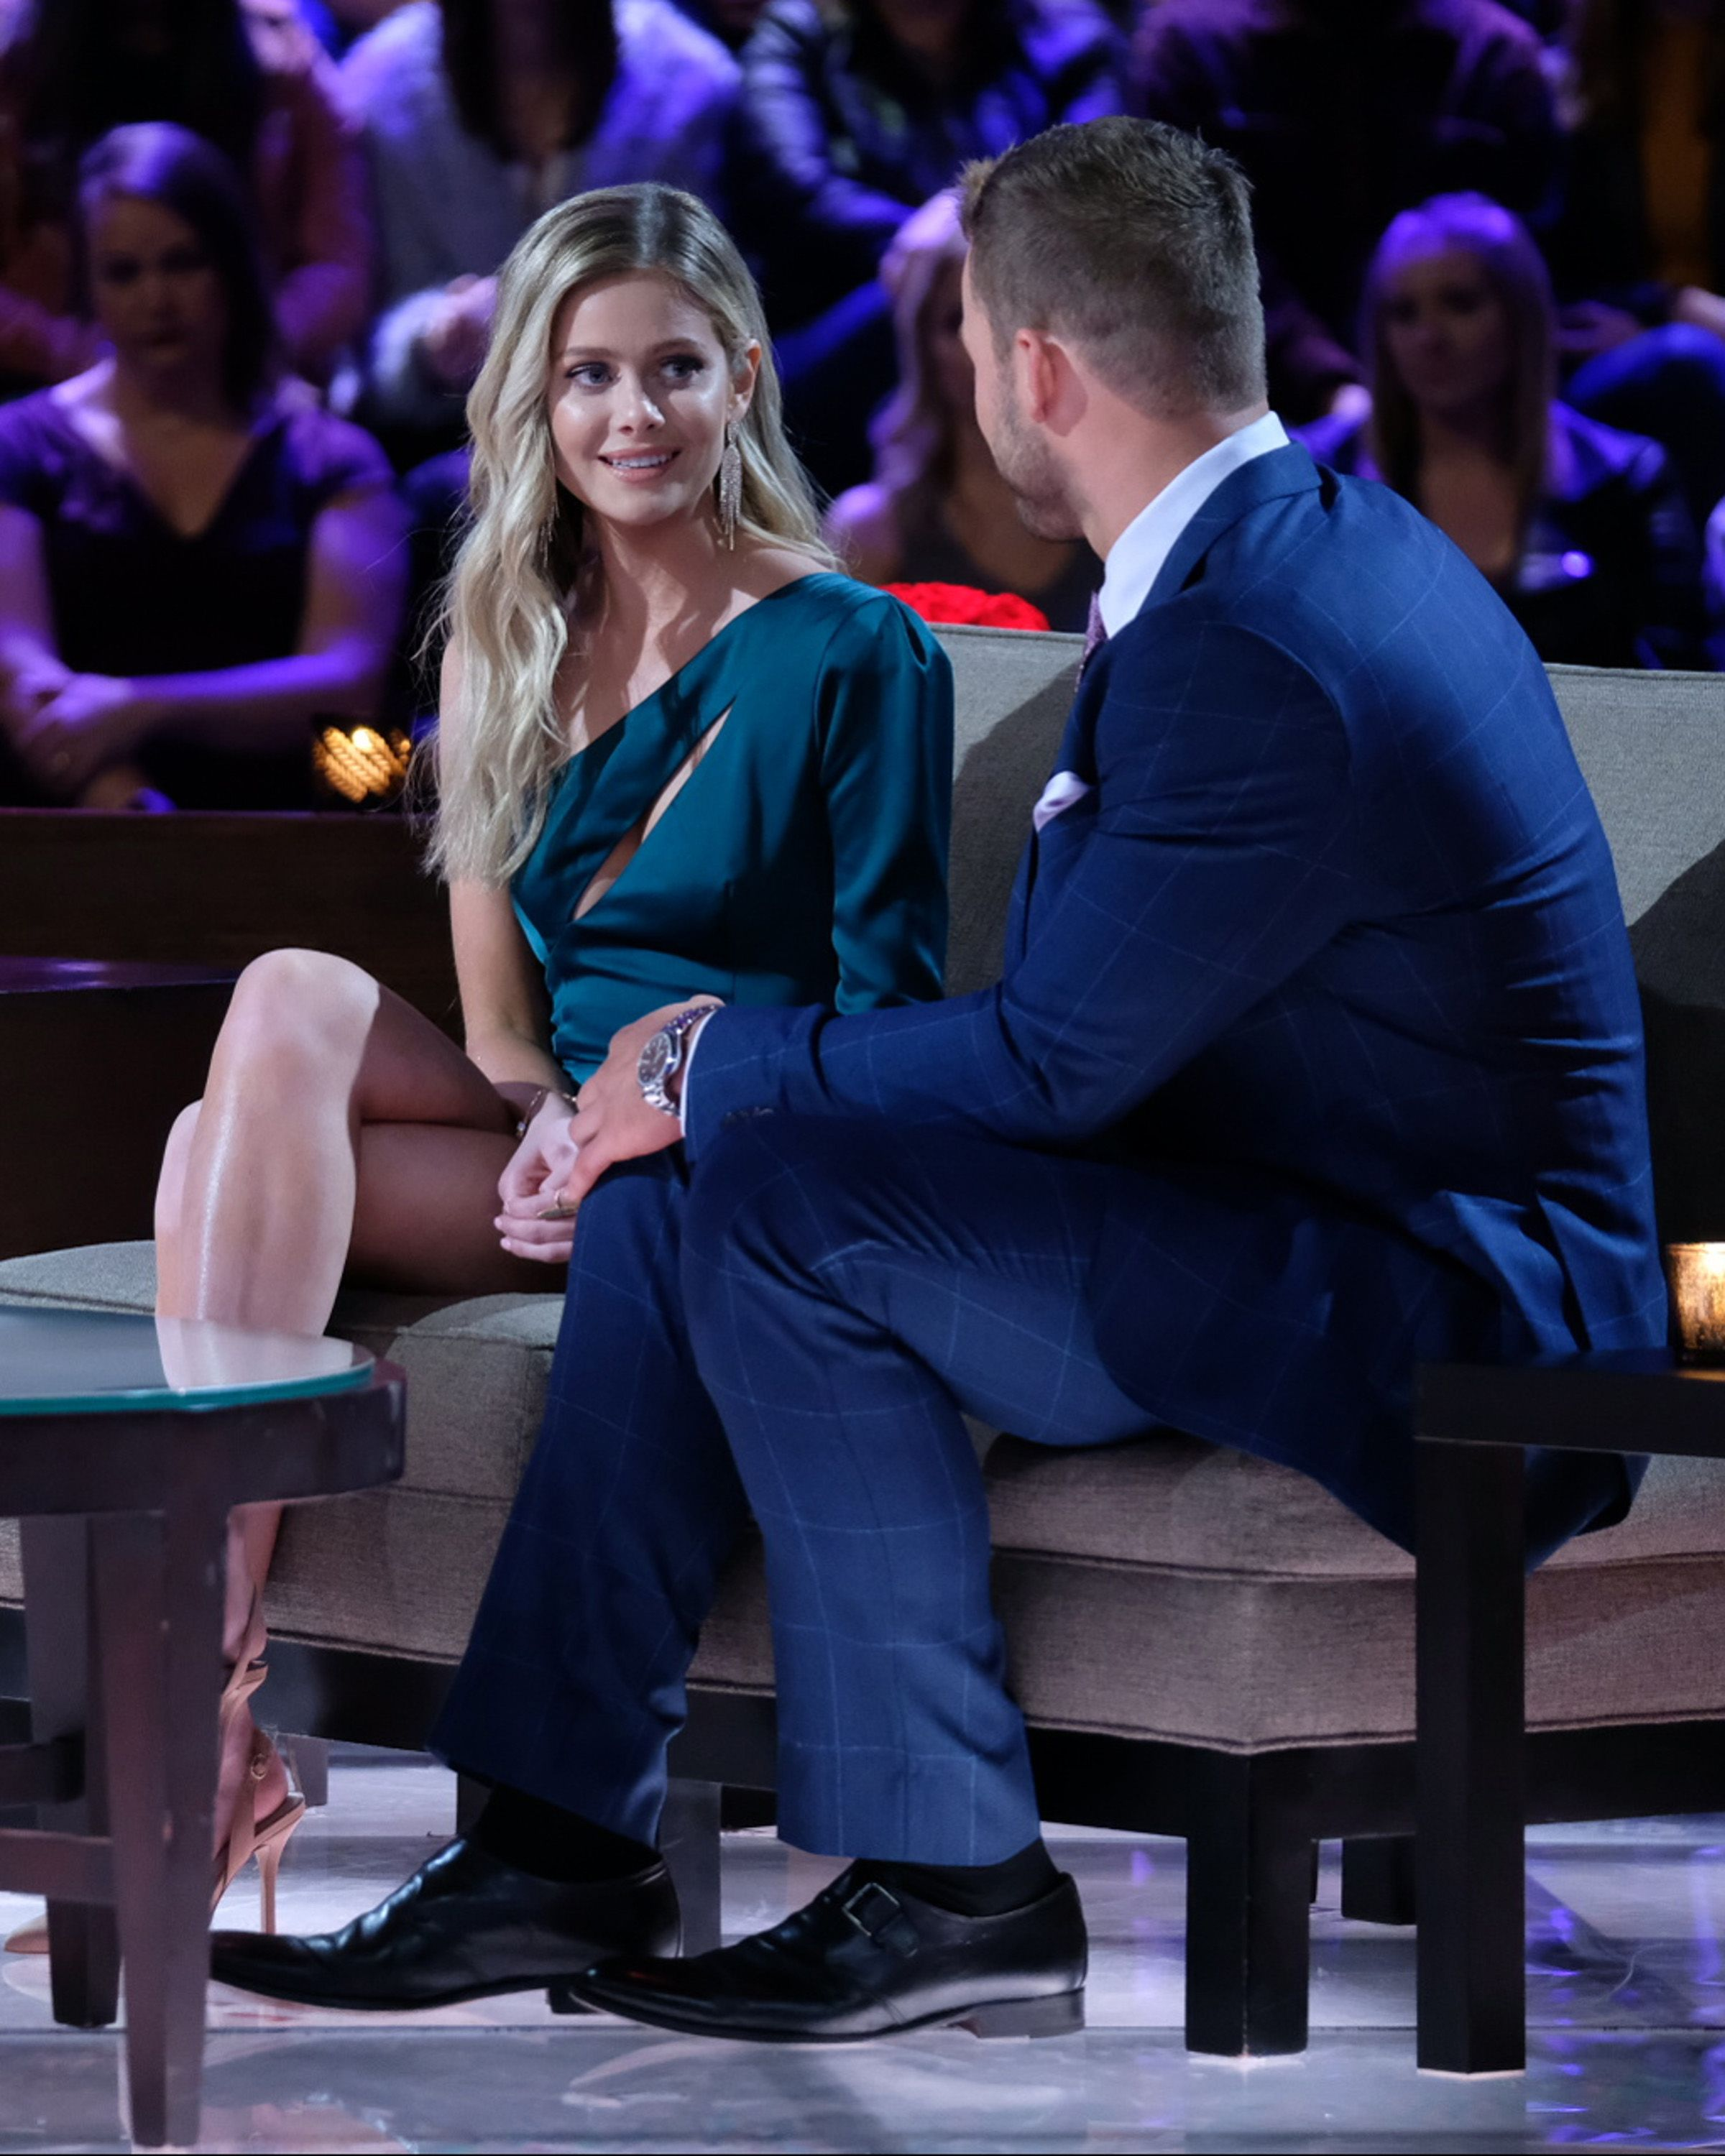 Which Contestants From Becca and Colton's Season Will We See in Paradise?